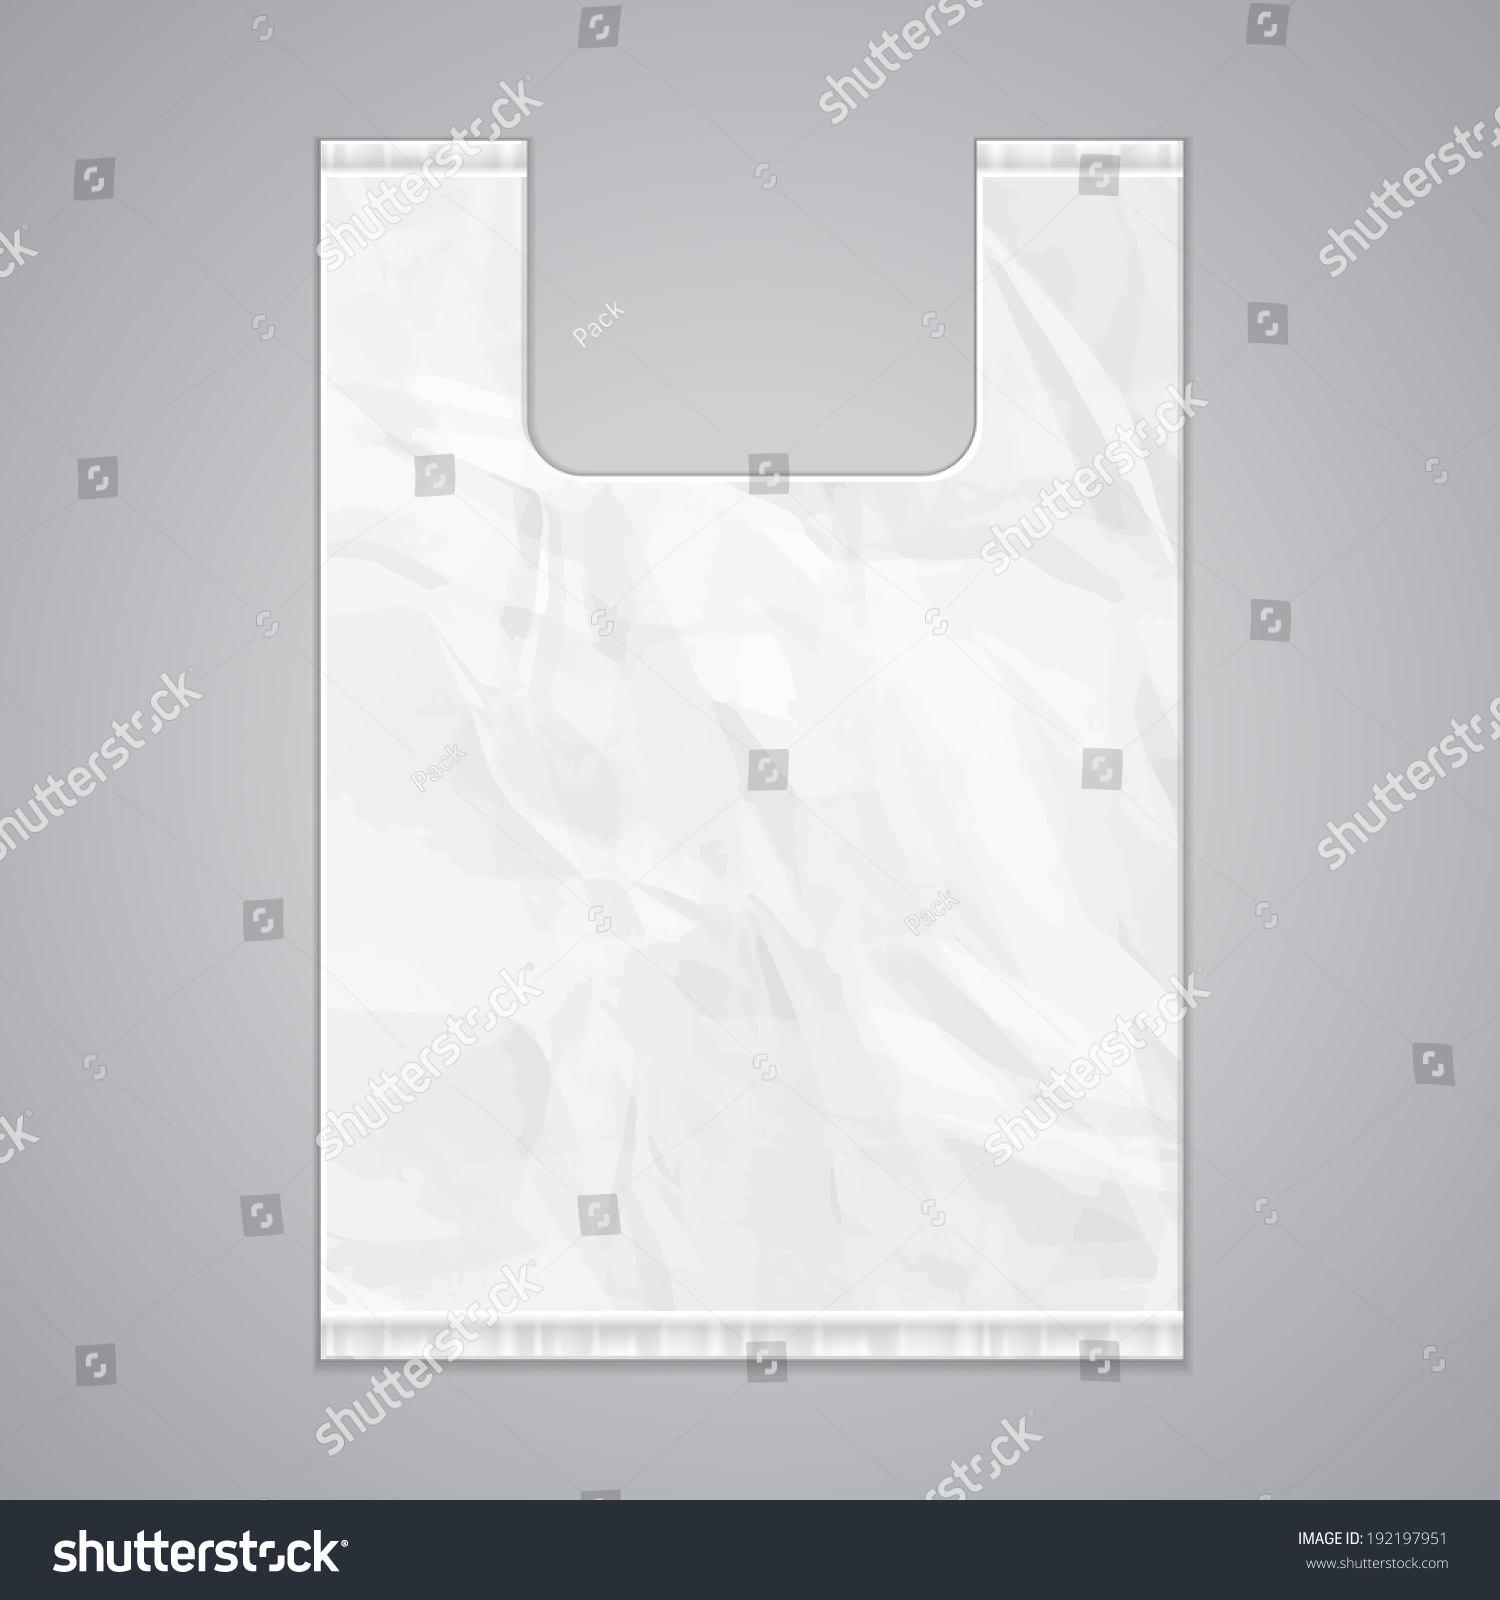 disposable plastic bag package grayscale template stock vector disposable plastic bag package grayscale template ready for your design product packing vector eps10